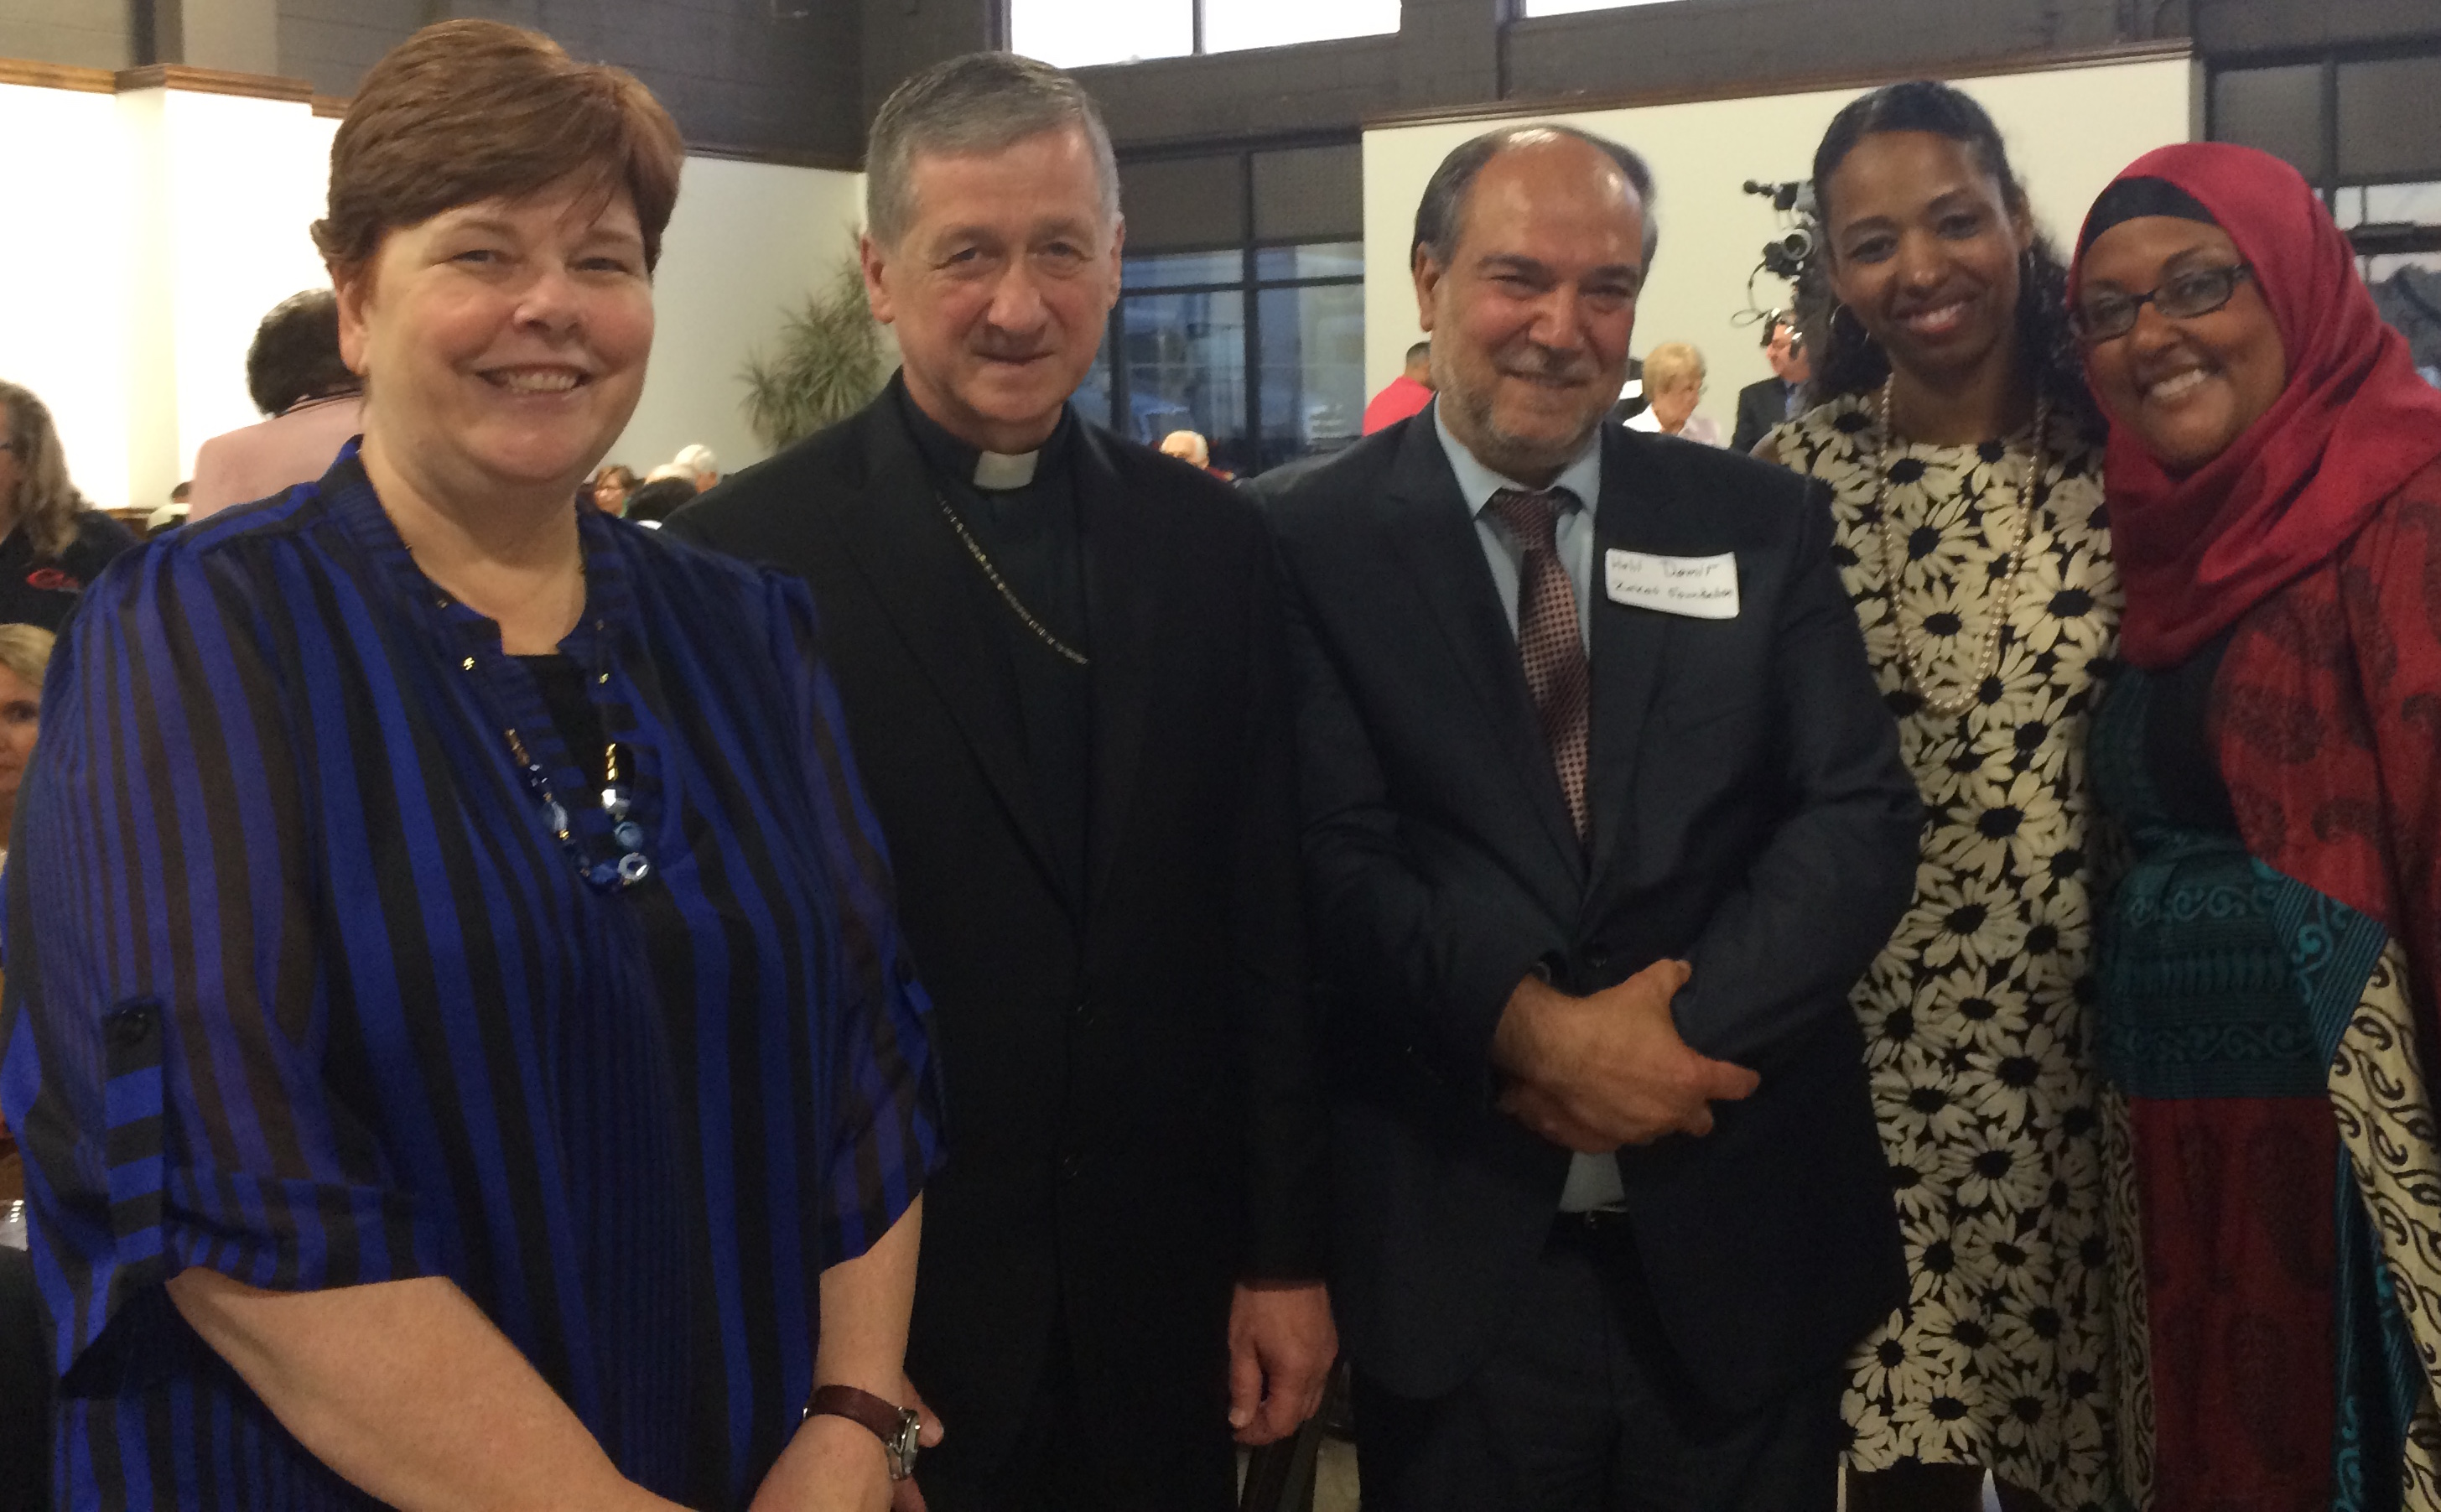 From Left to Right: Rev. CJ Hawking, Abp. Blase Cupic, Dr. Halil Demir, Dr. Larycia Hawking, Donnna Demir